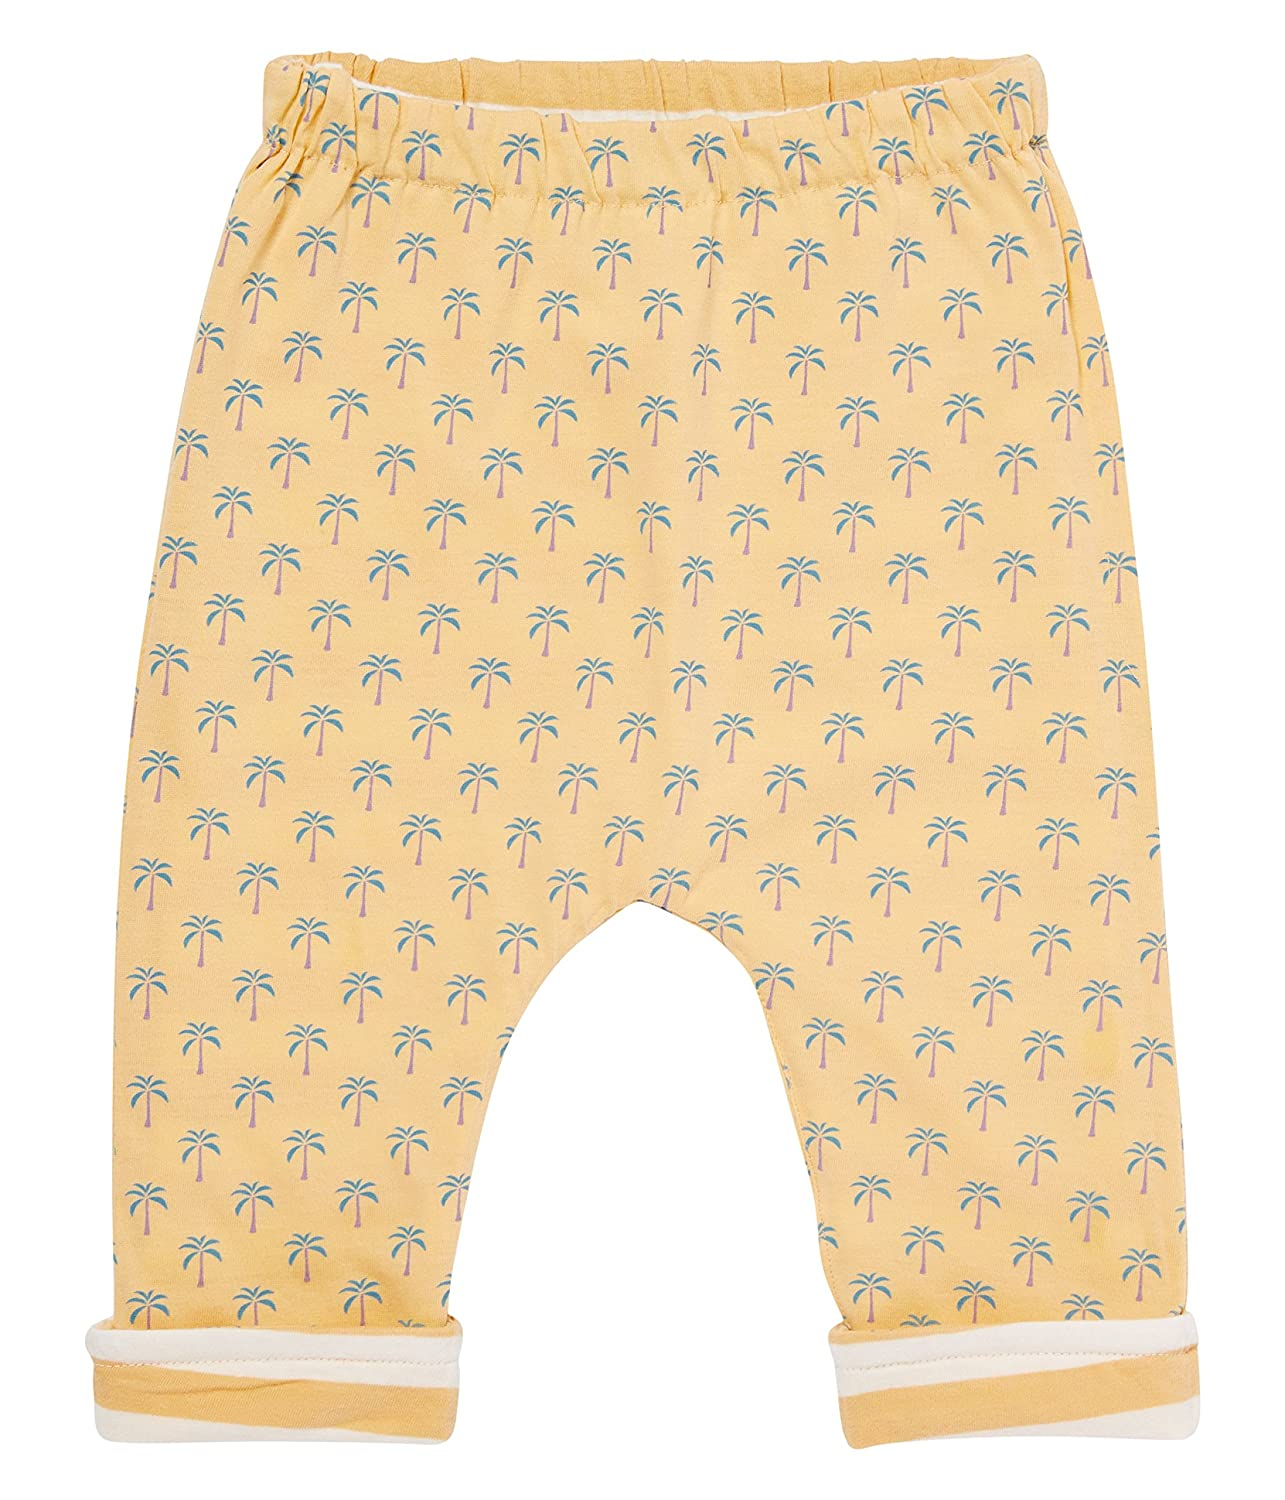 Ecoable Baby /& Toddler Girls/' Reversible Pants Organic Cotton Apricot Stripes